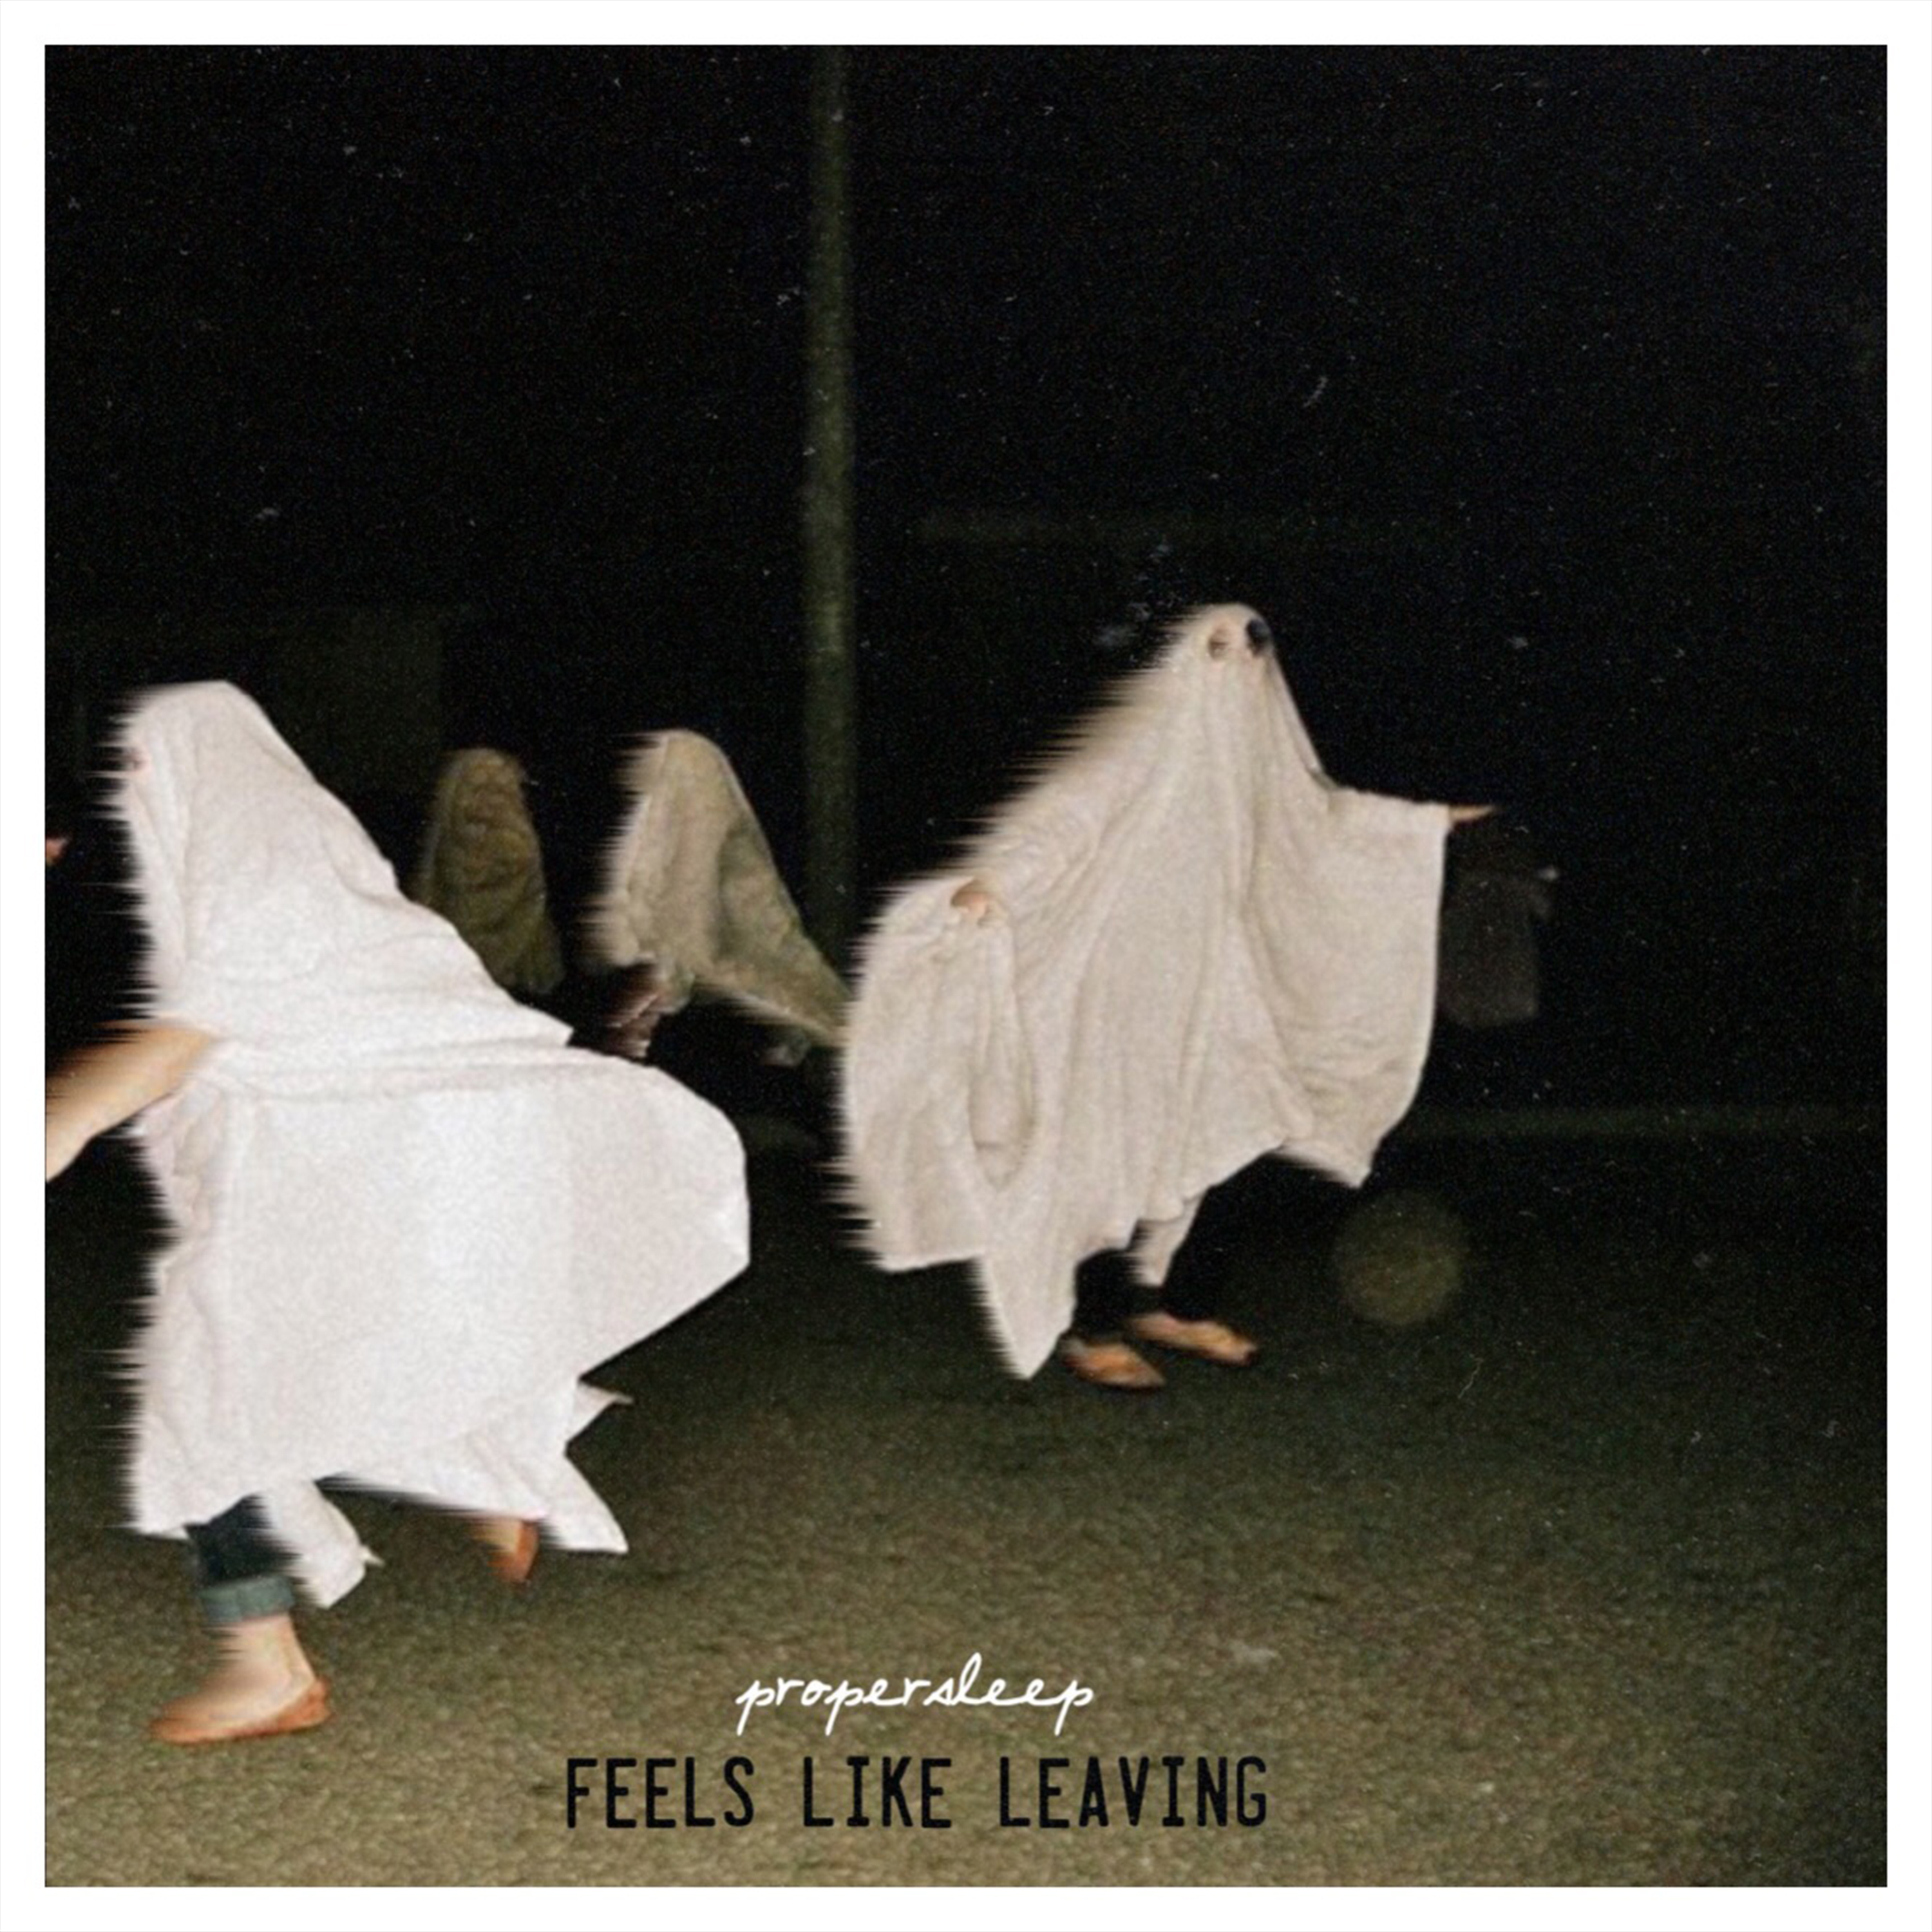 propersleep - 'Feels Like Leaving'